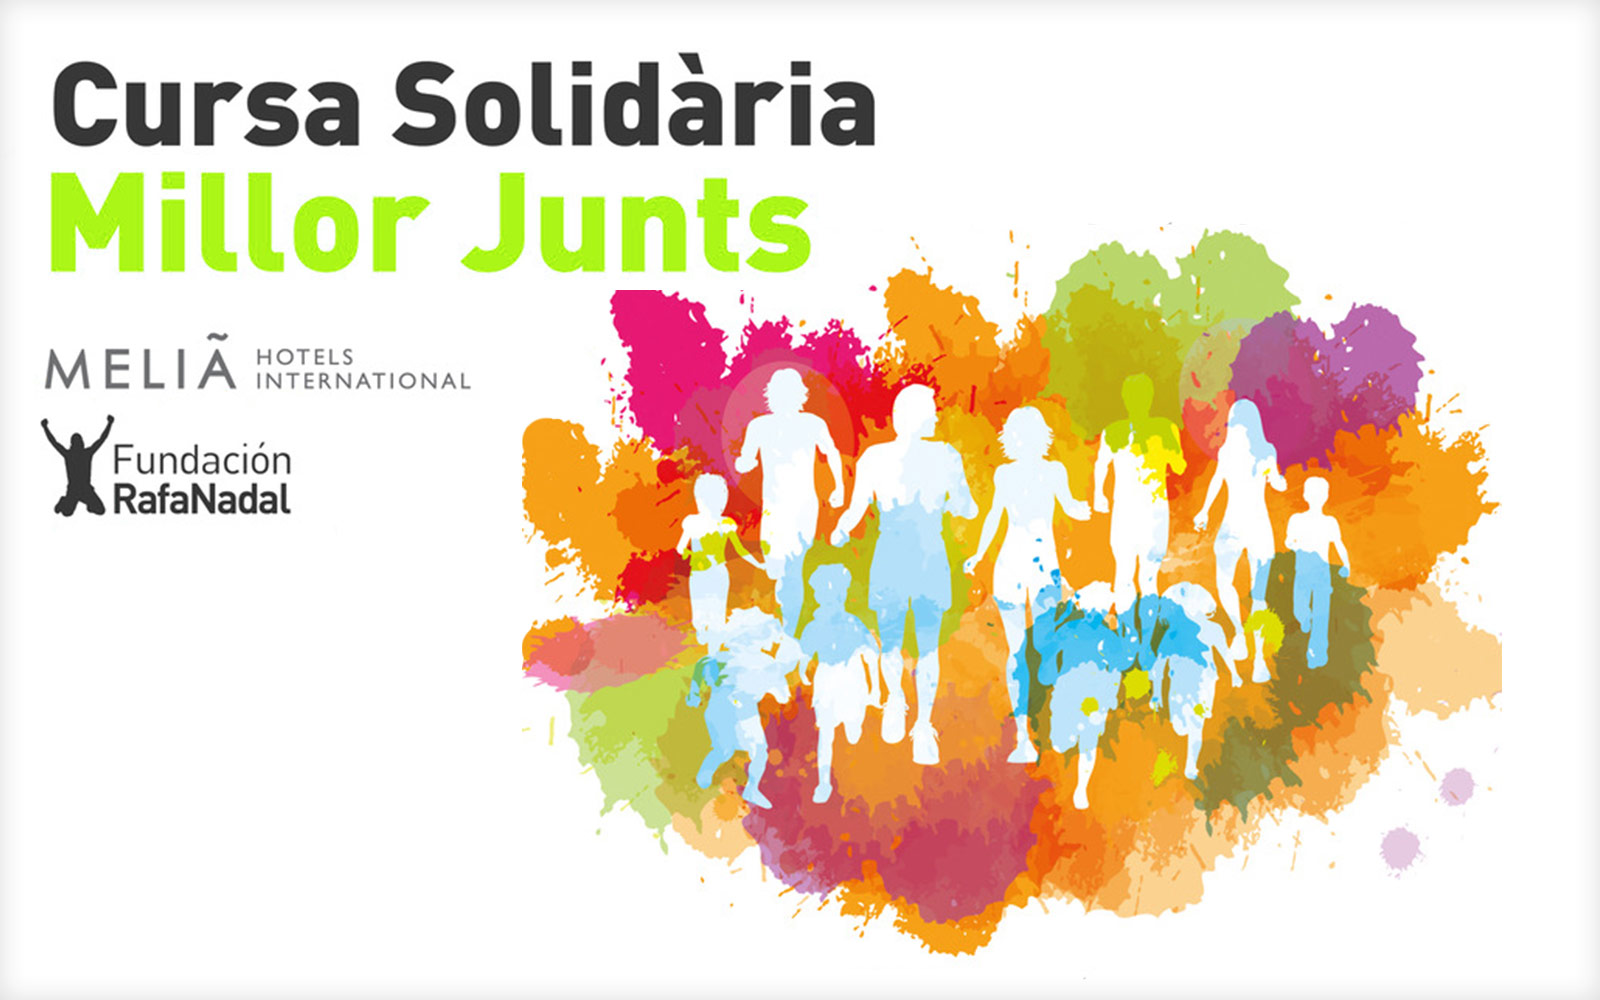 The Foundation and the first edition of the 'Millor Junts' charity race